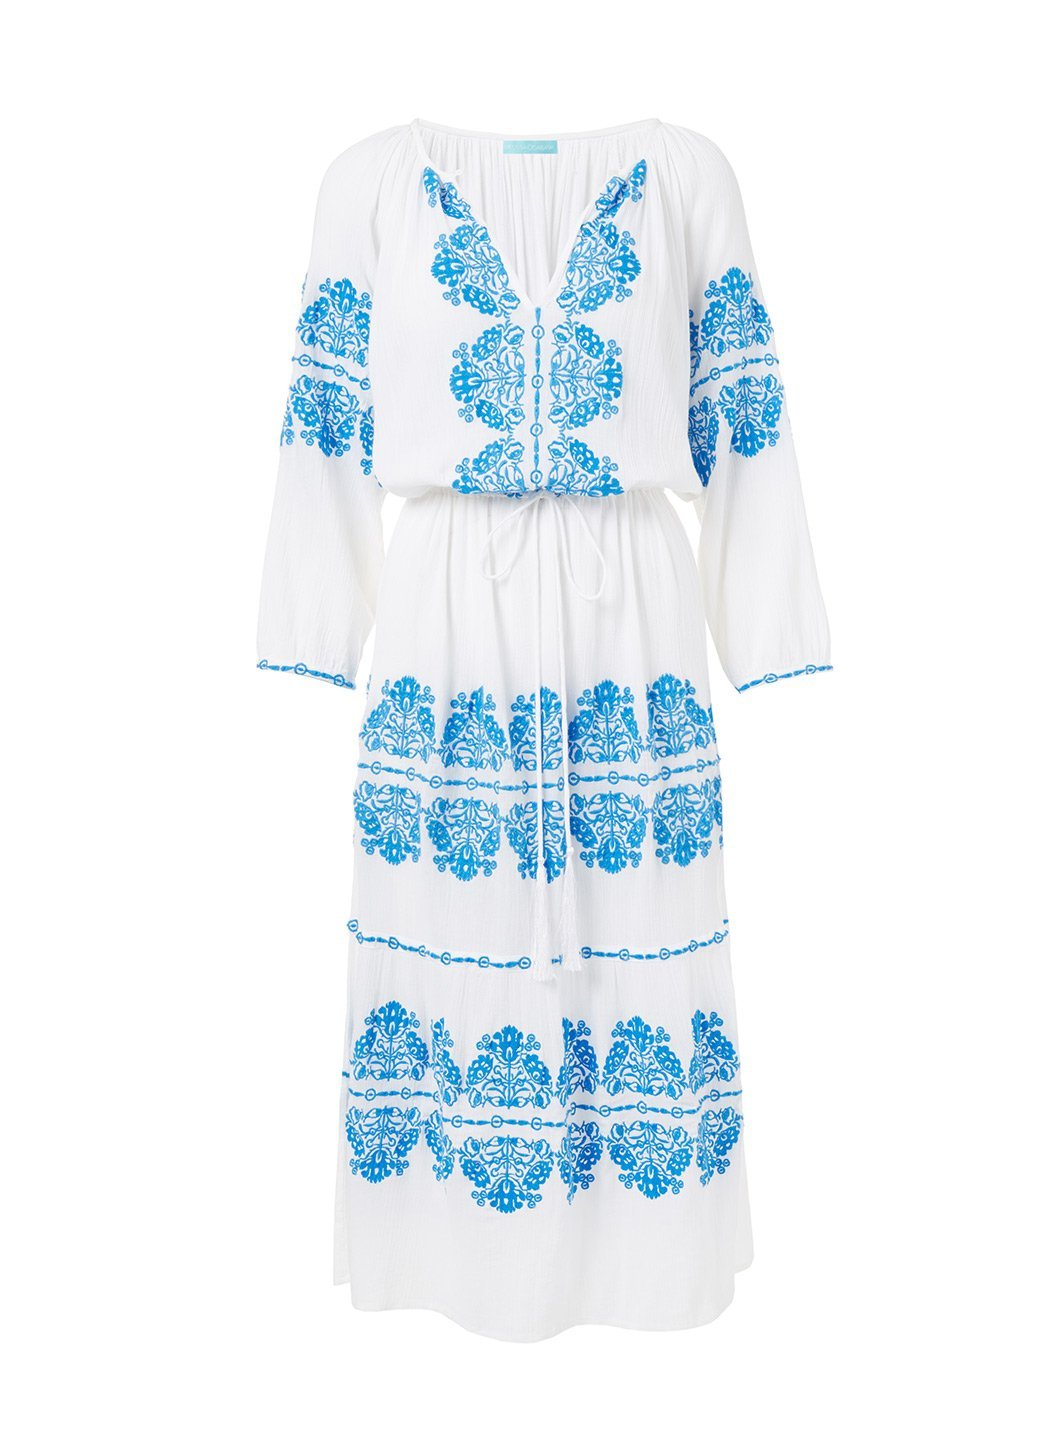 lillie whiteblue embroidered midi dress 2019